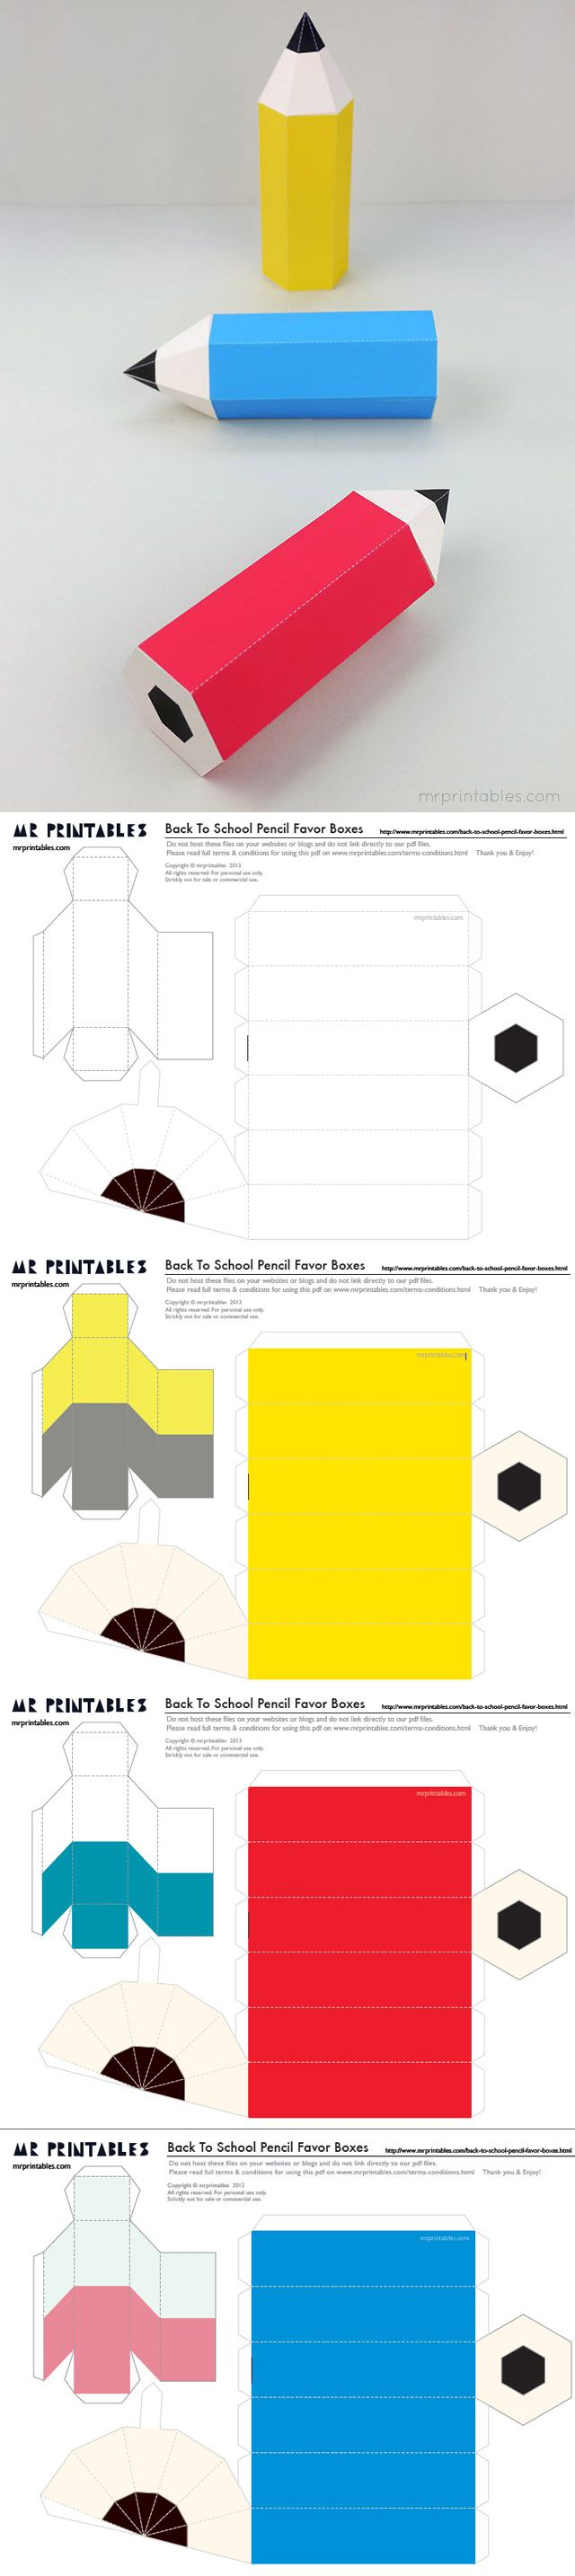 Pencil Box. Templates